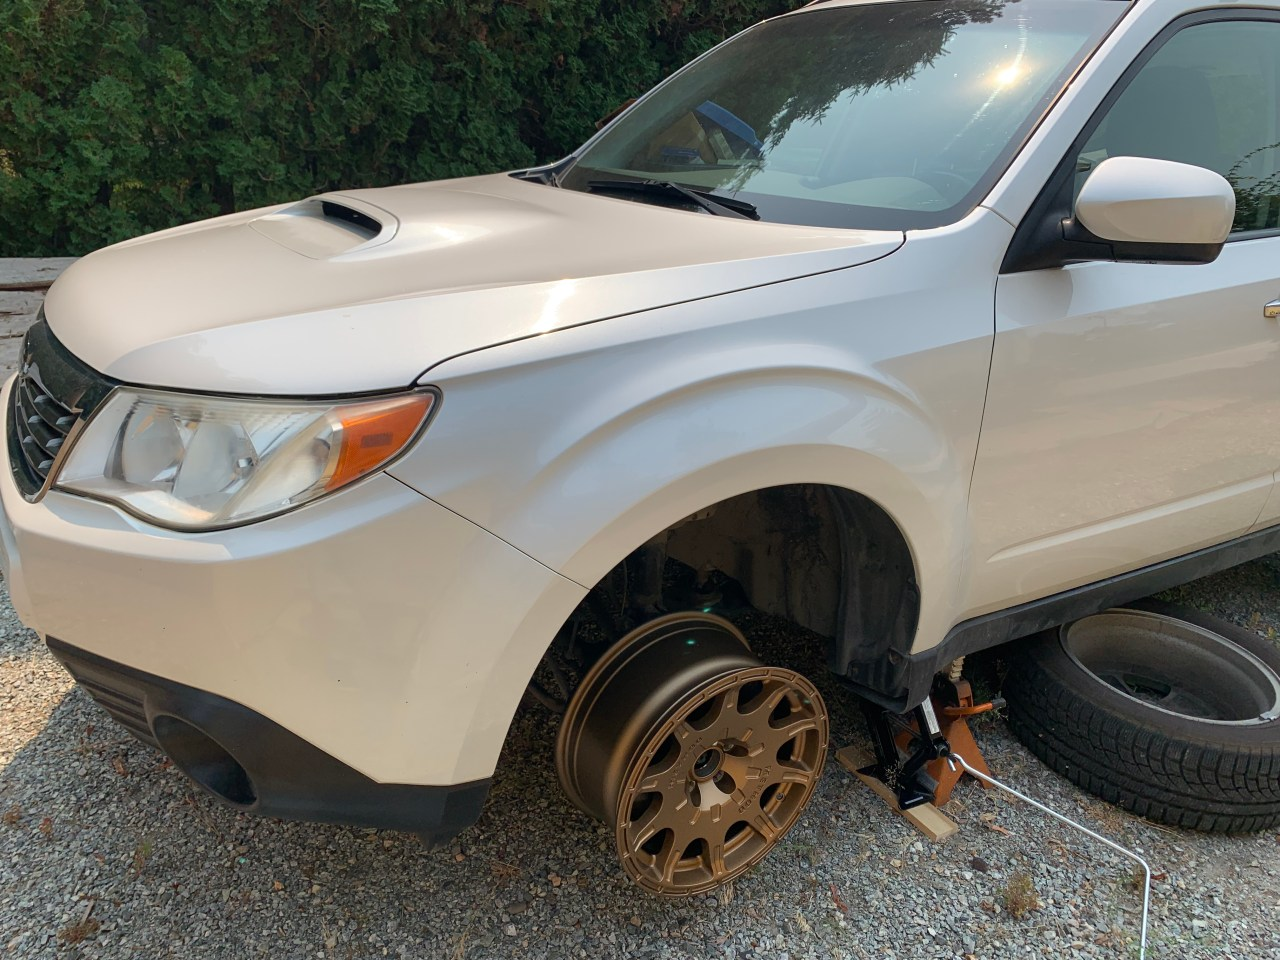 Test fitting the 15 inch method 502 wheels on the Subaru Forester xt